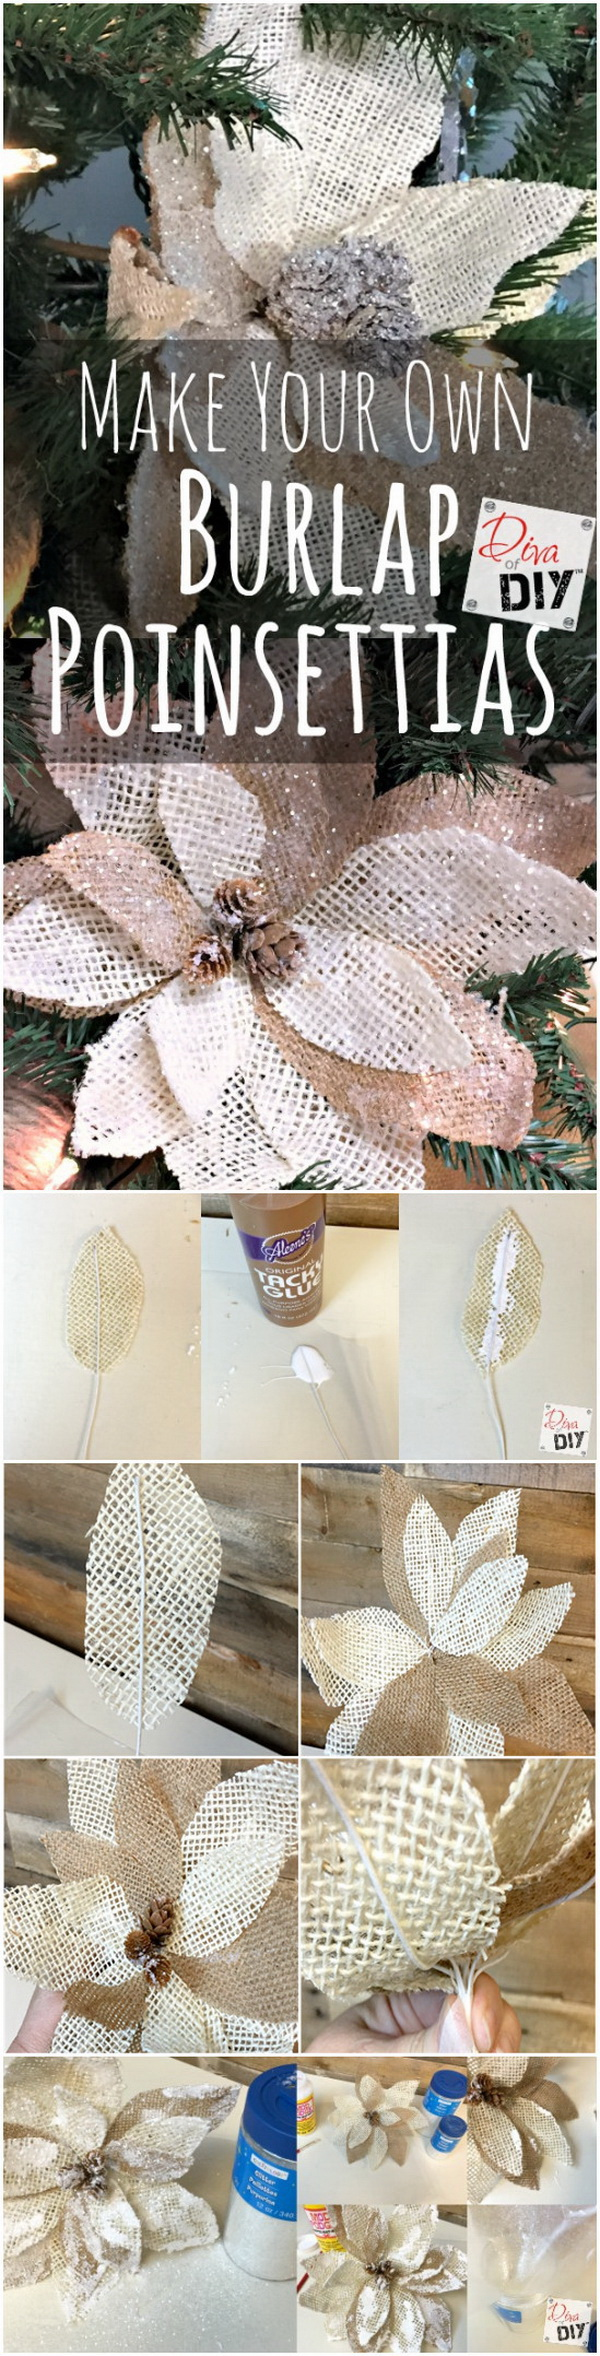 Burlap Poinsettias for Christmas Decor.